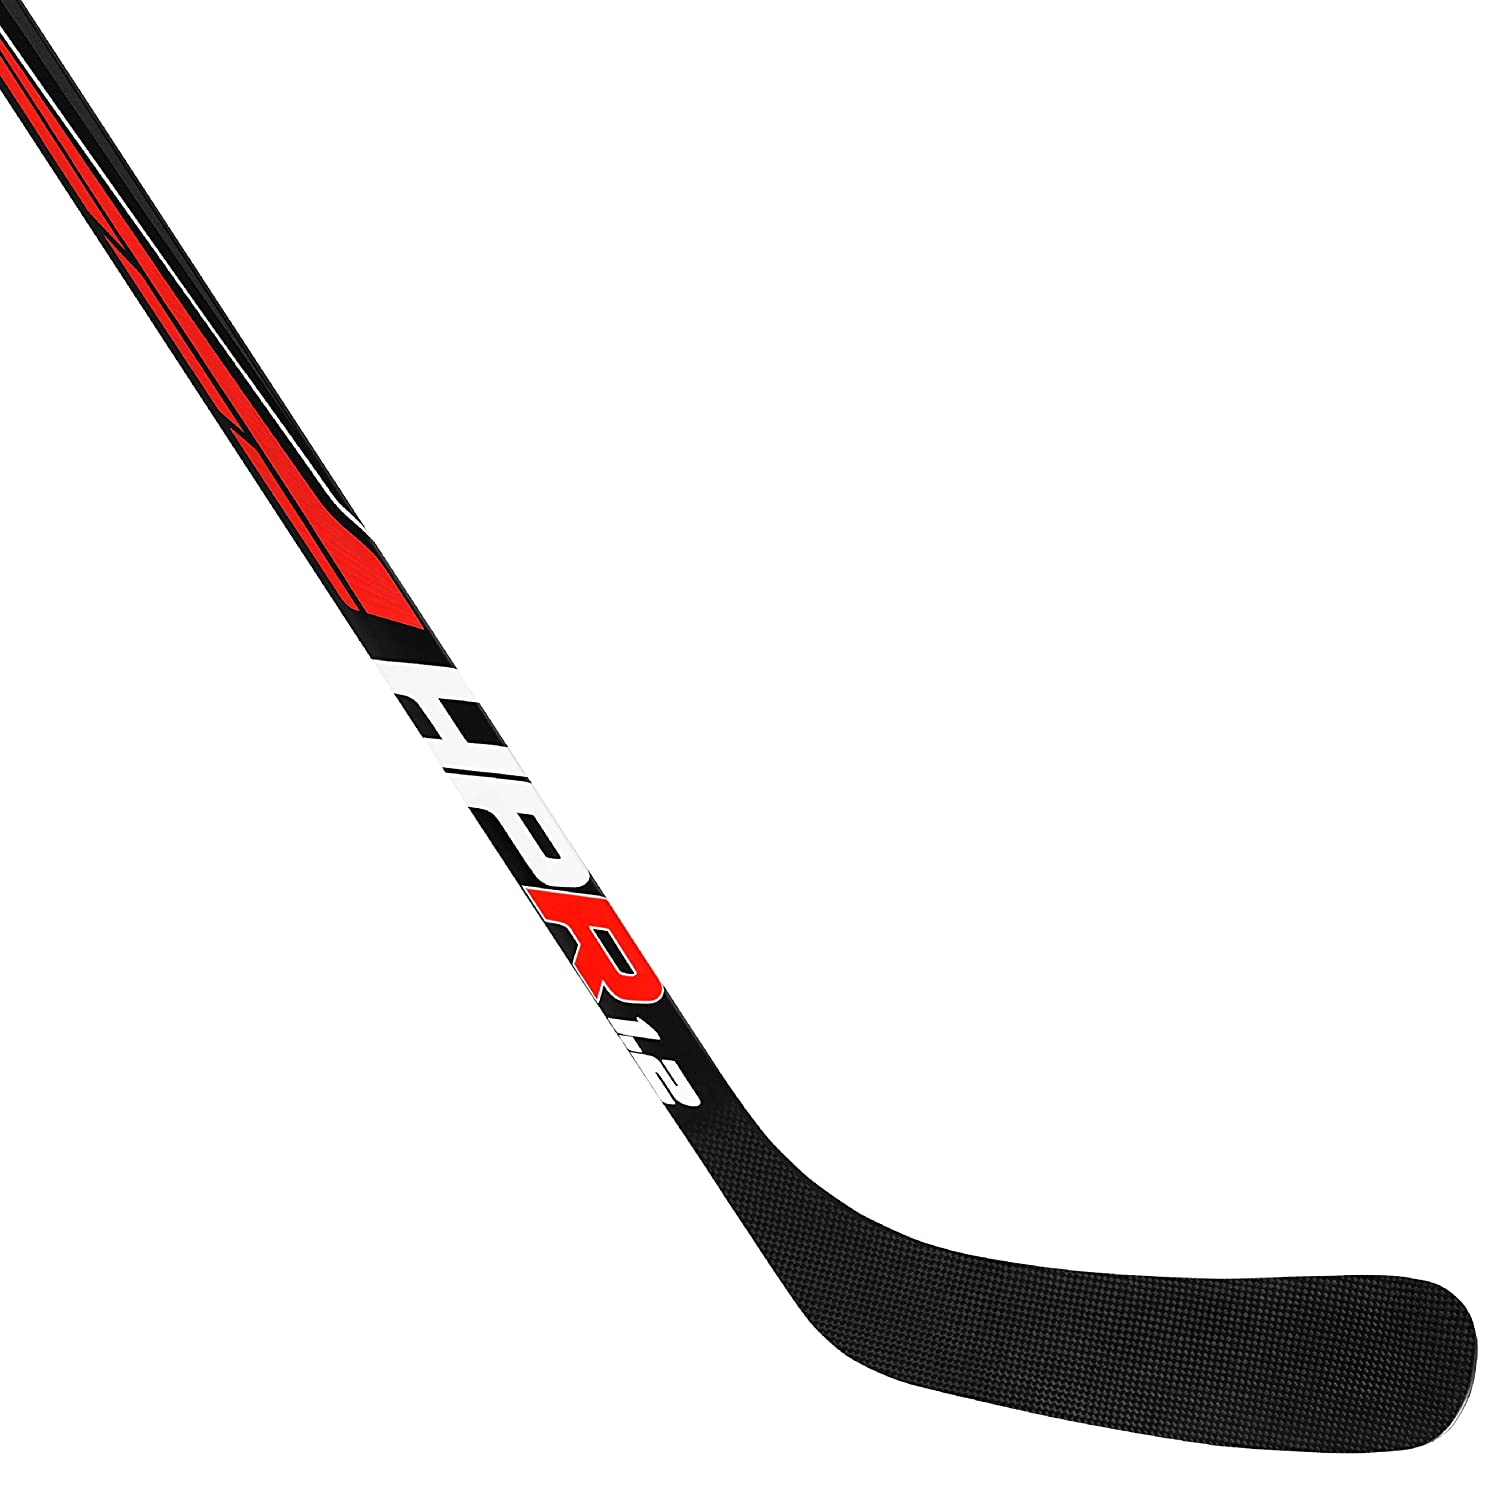 Stick Handling Training Aid – Hockey Puck Handling Trainer – 4 sections 72 Inches Long